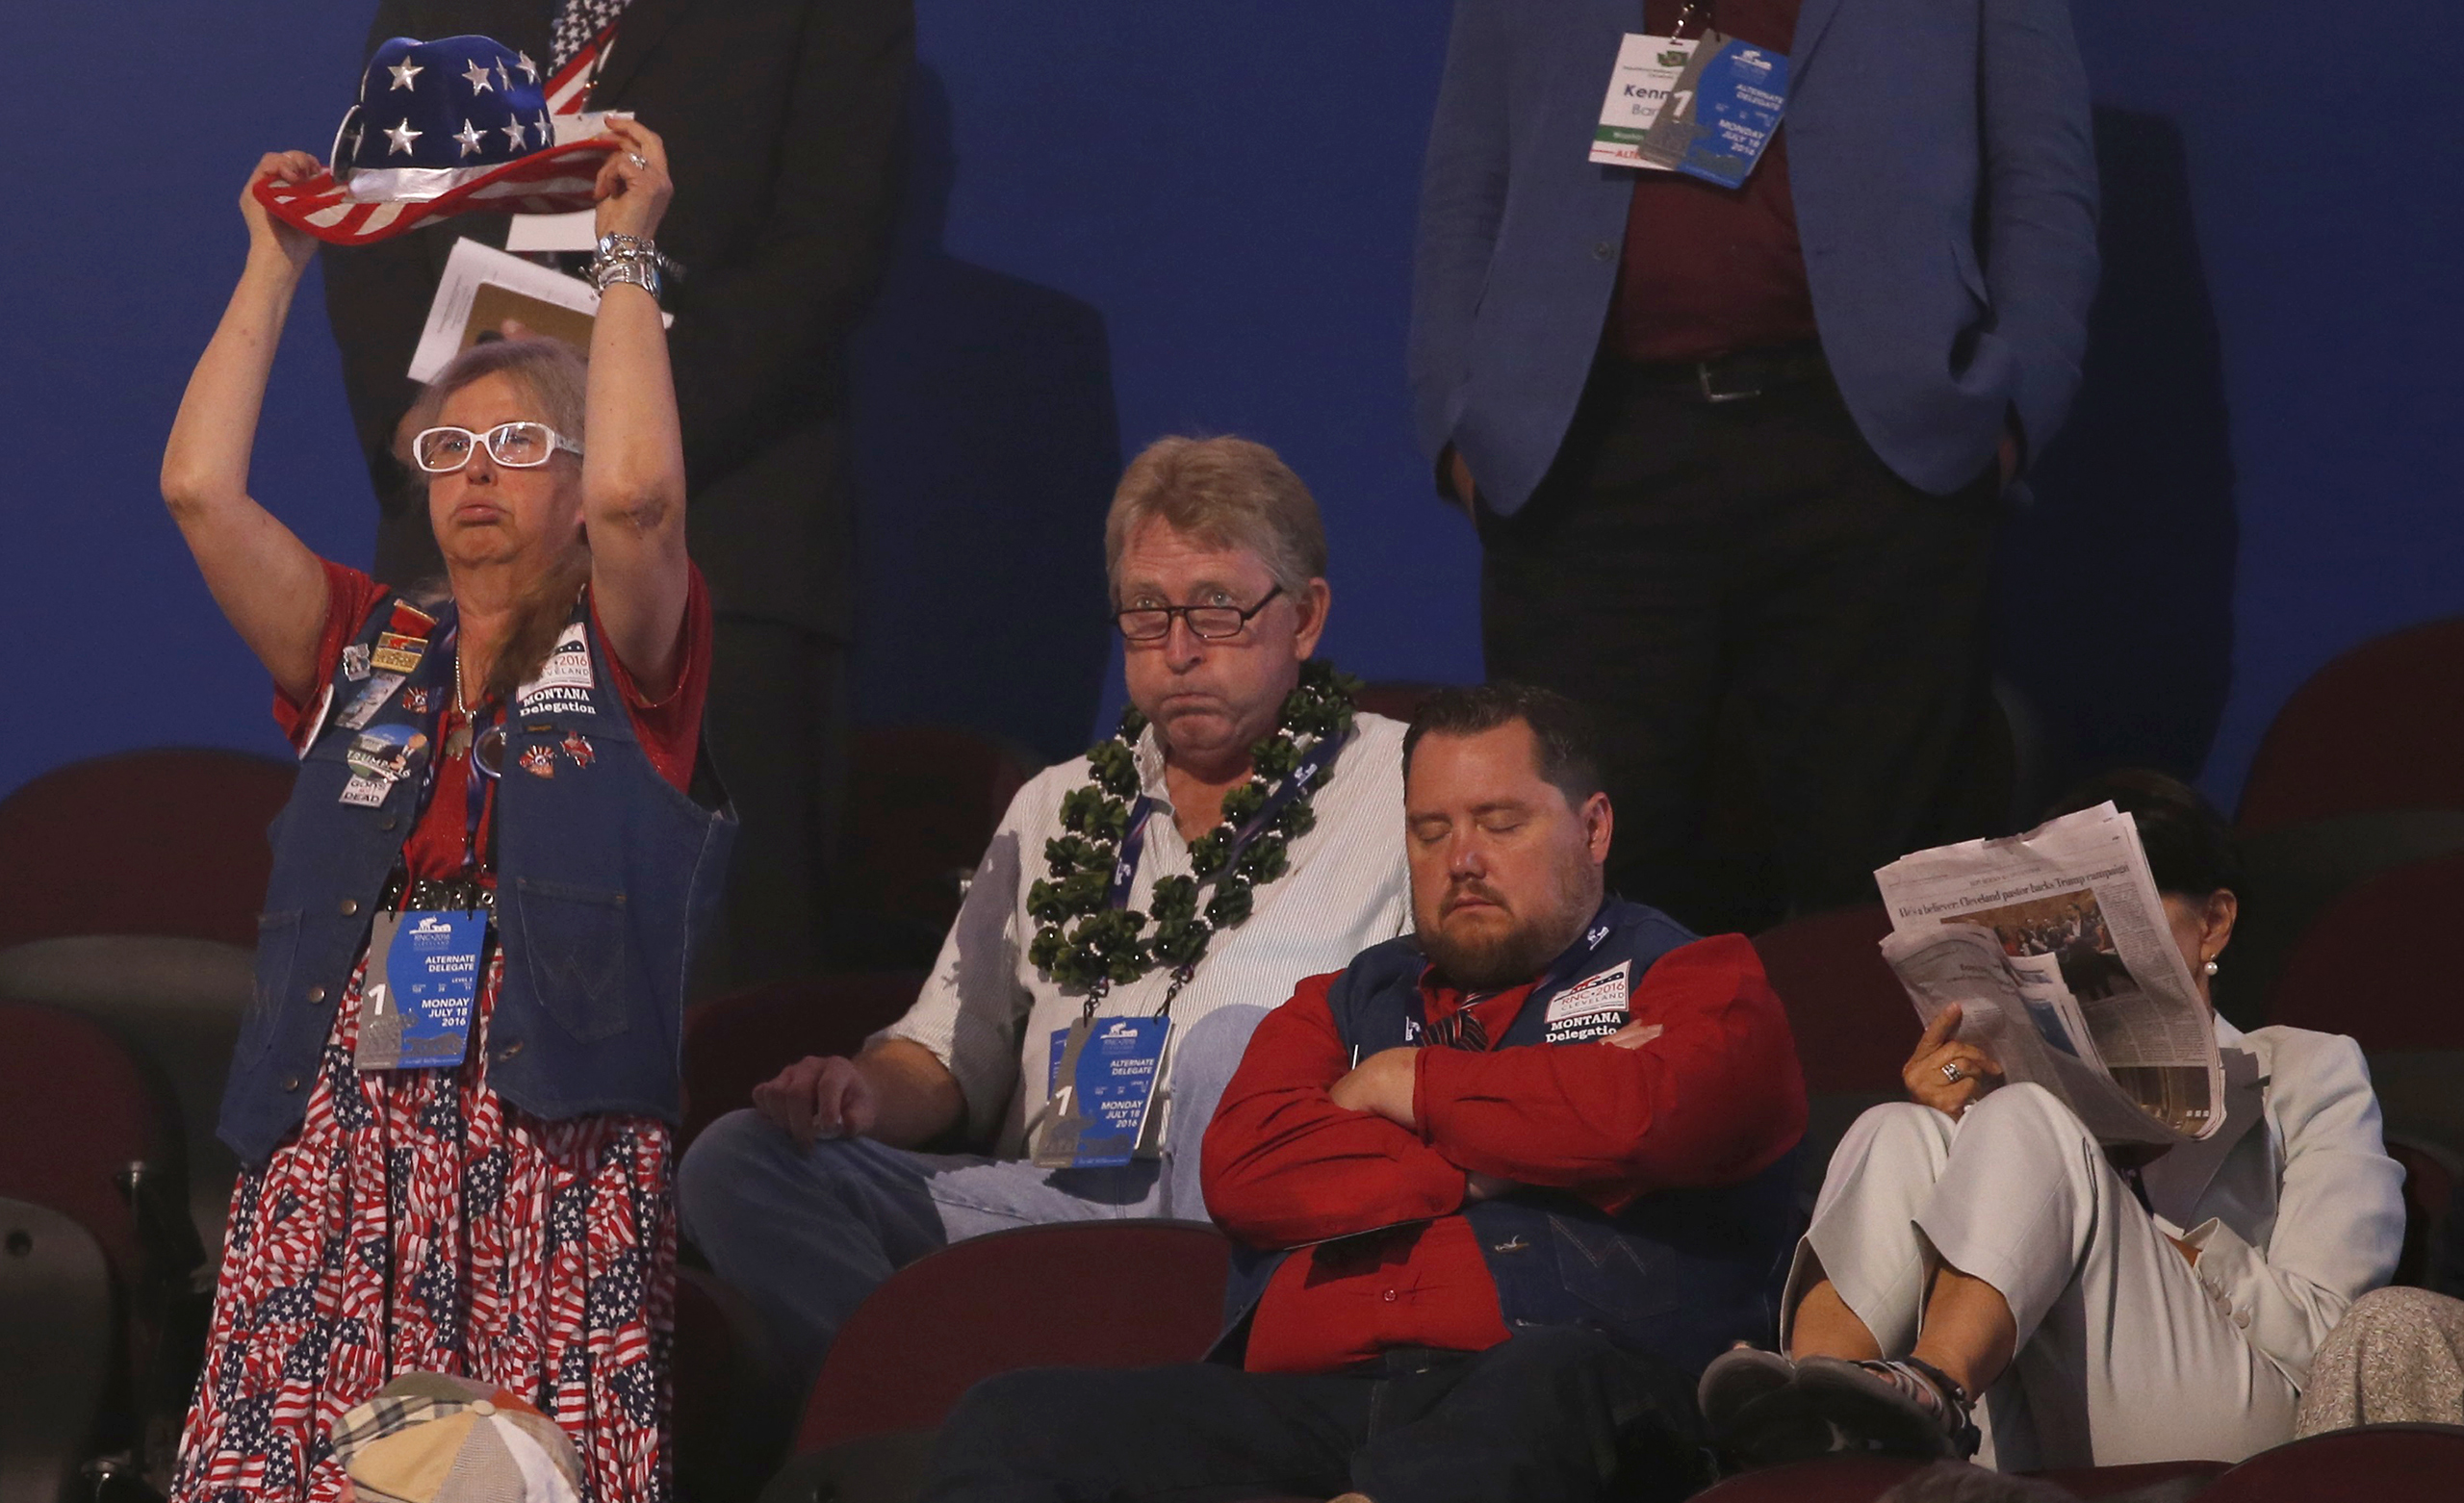 Alternate delegates and visitors watch with a variety of expression at the Republican National Convention in Cleveland, Ohio, on July 18, 2016.